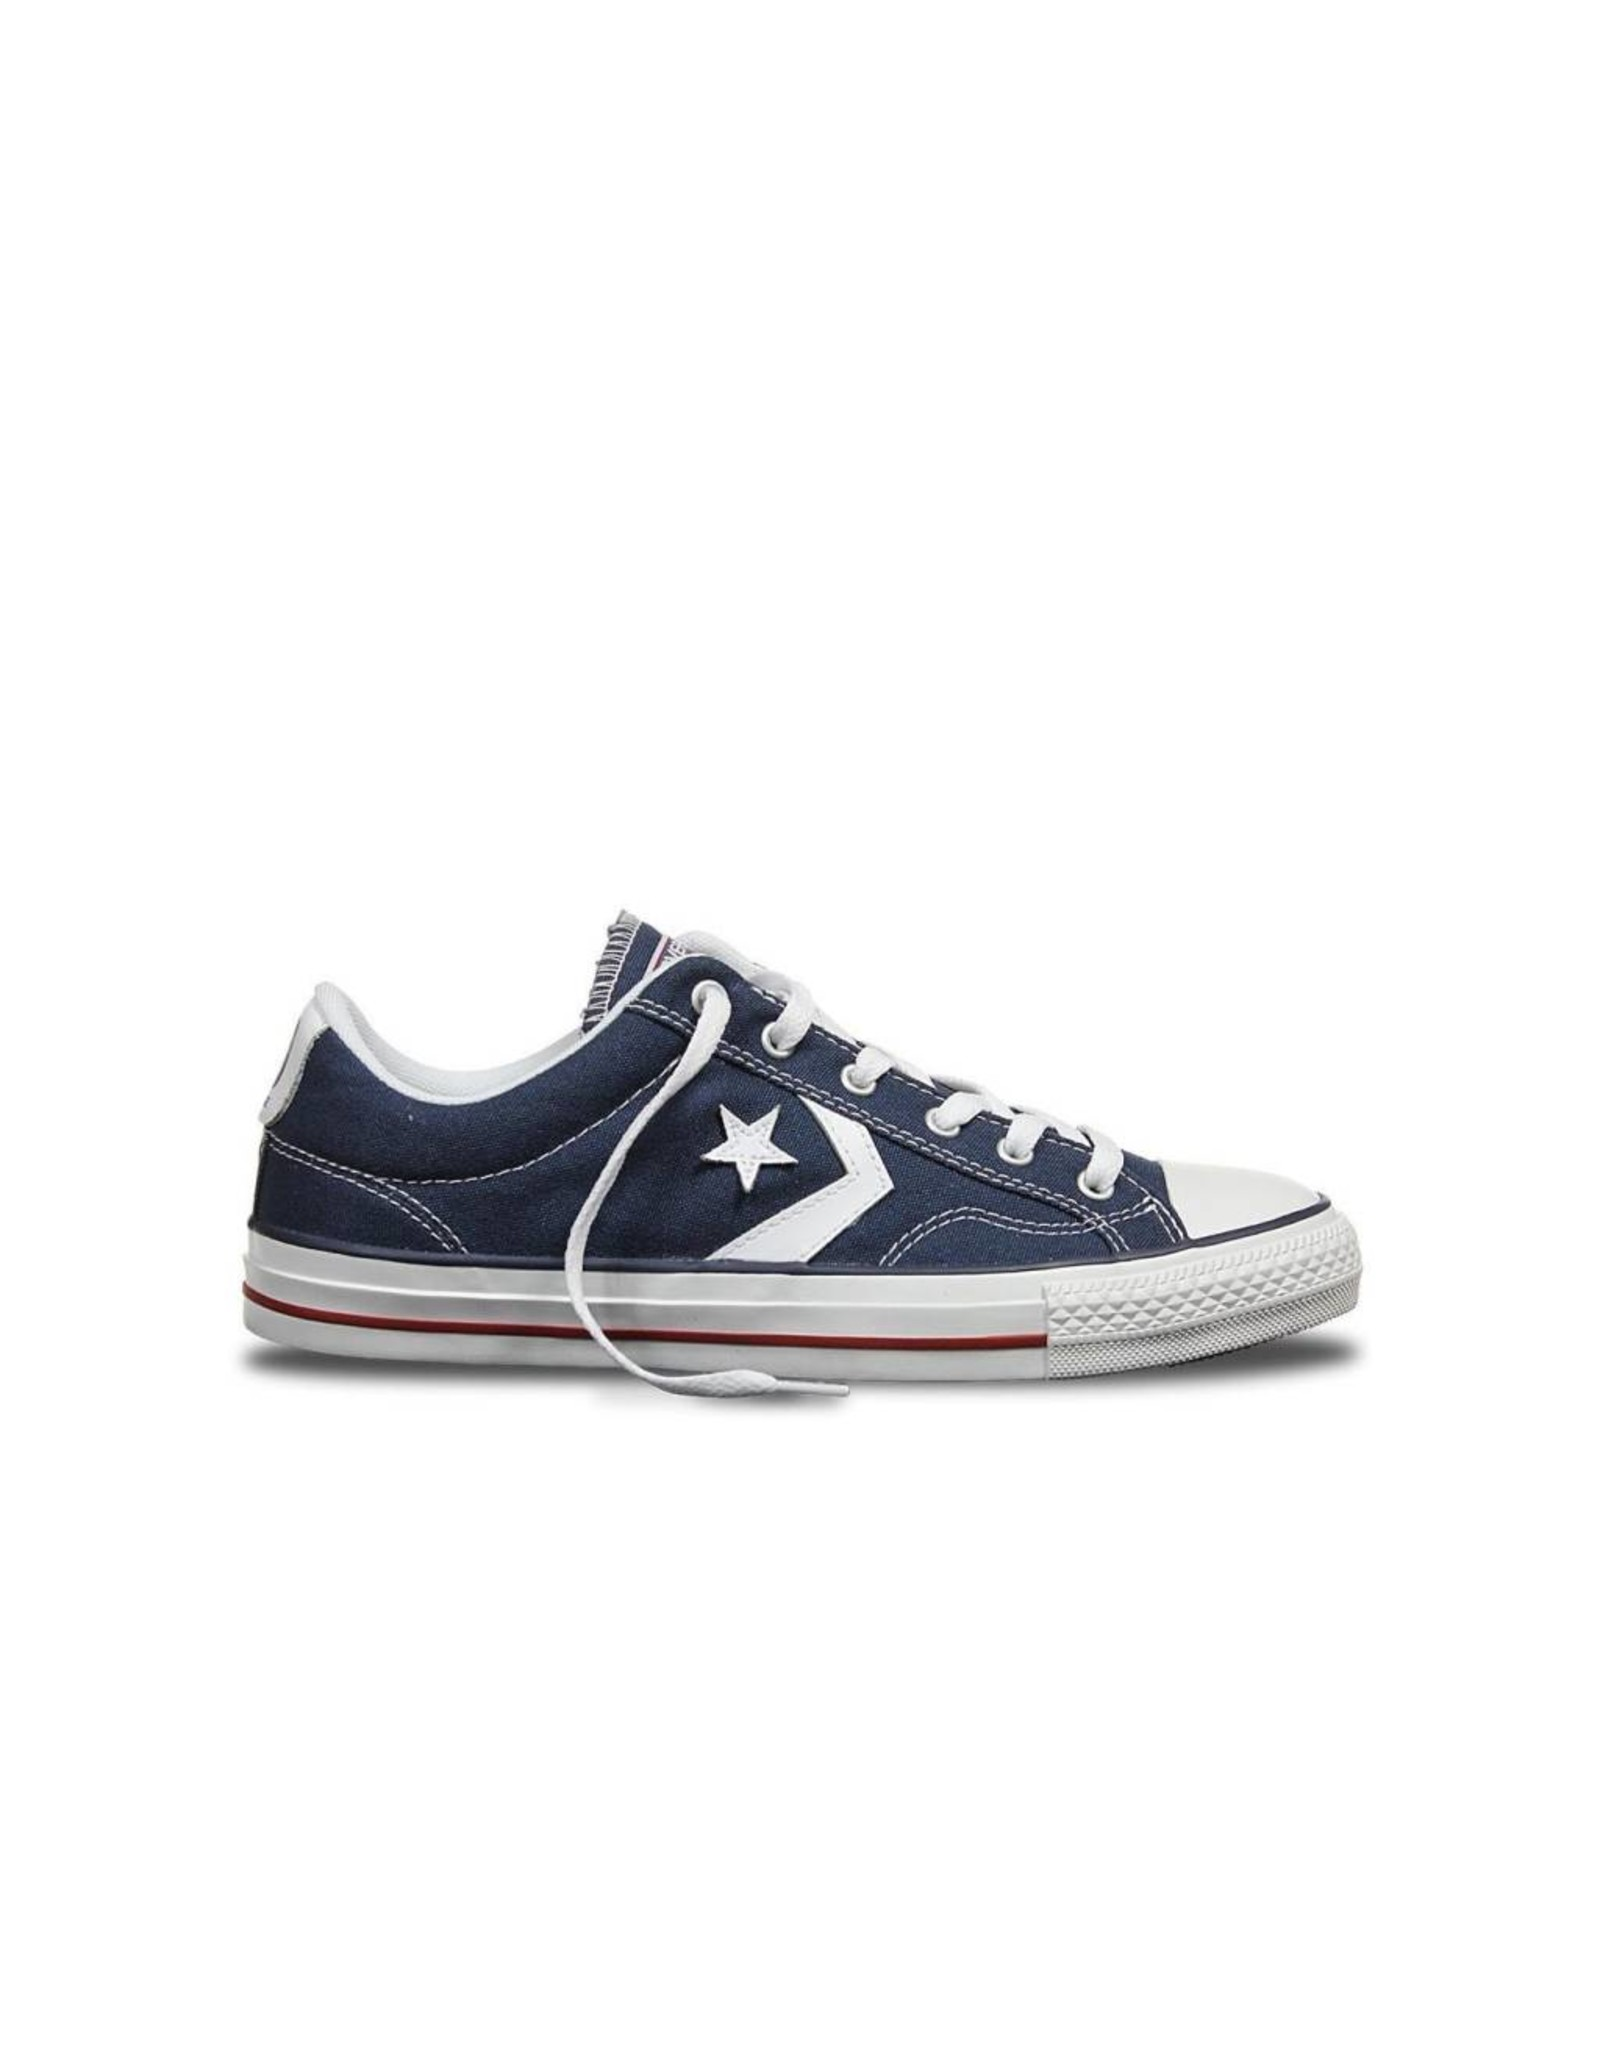 CONVERSE STAR PLAYER OX NAVY/WHITE C786STN-144150C